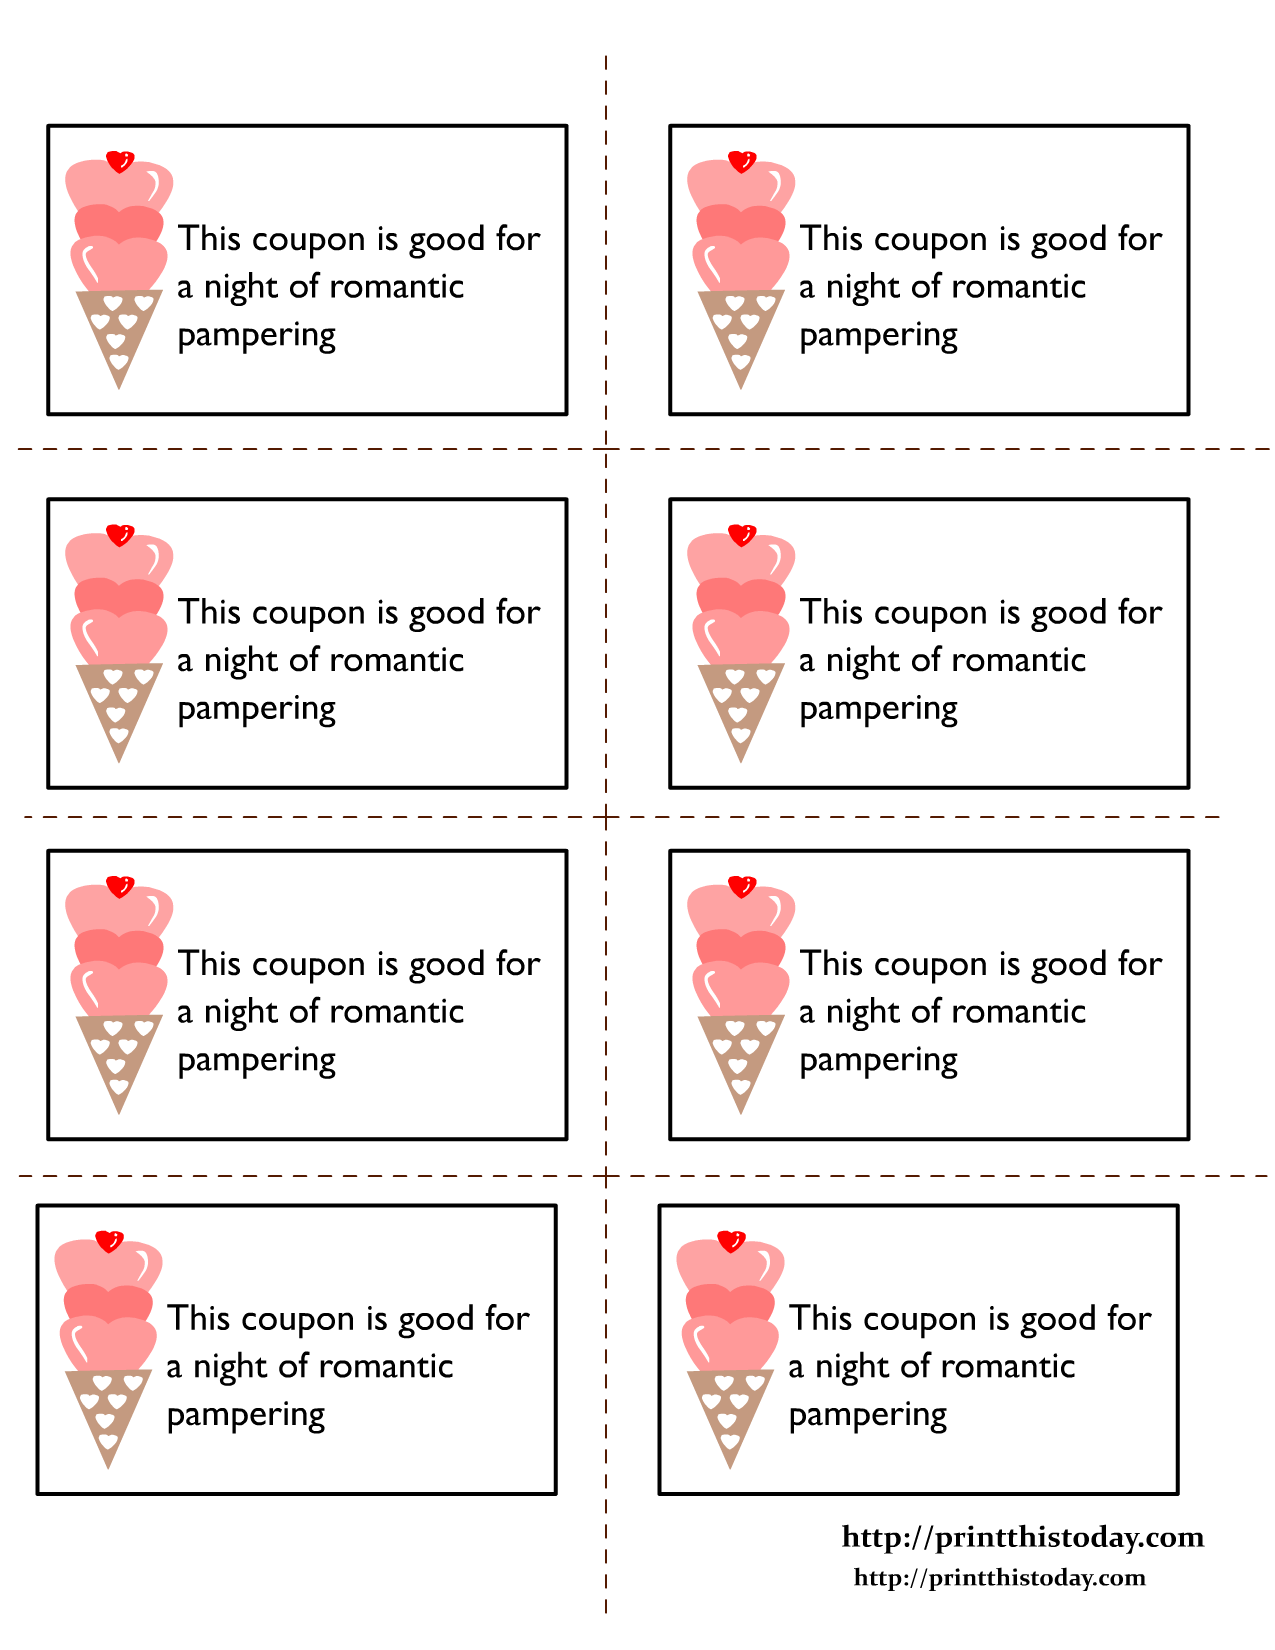 Free printable romantic coupons for him